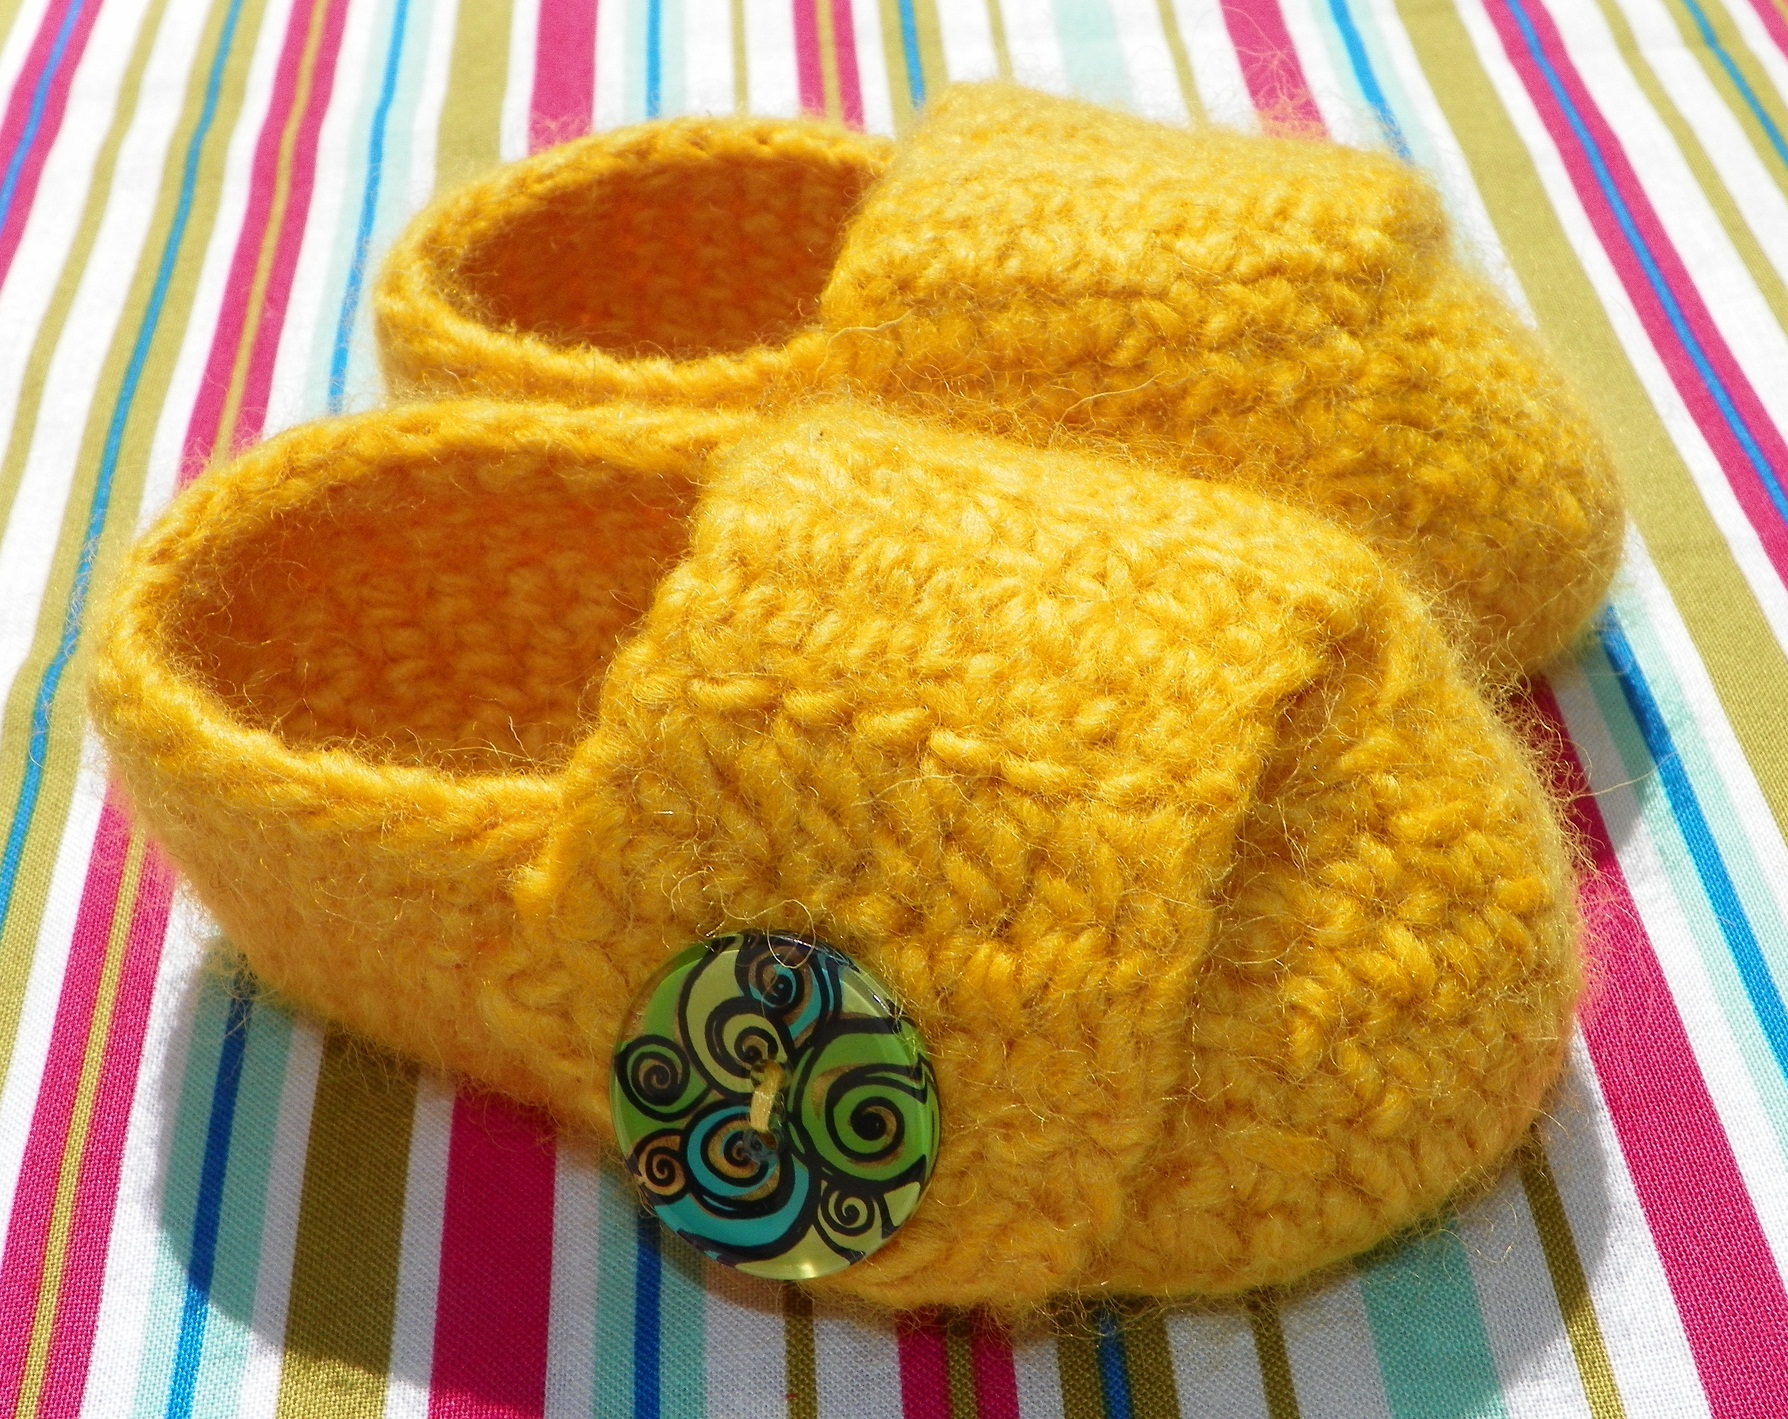 Yellow_20booties_201_original